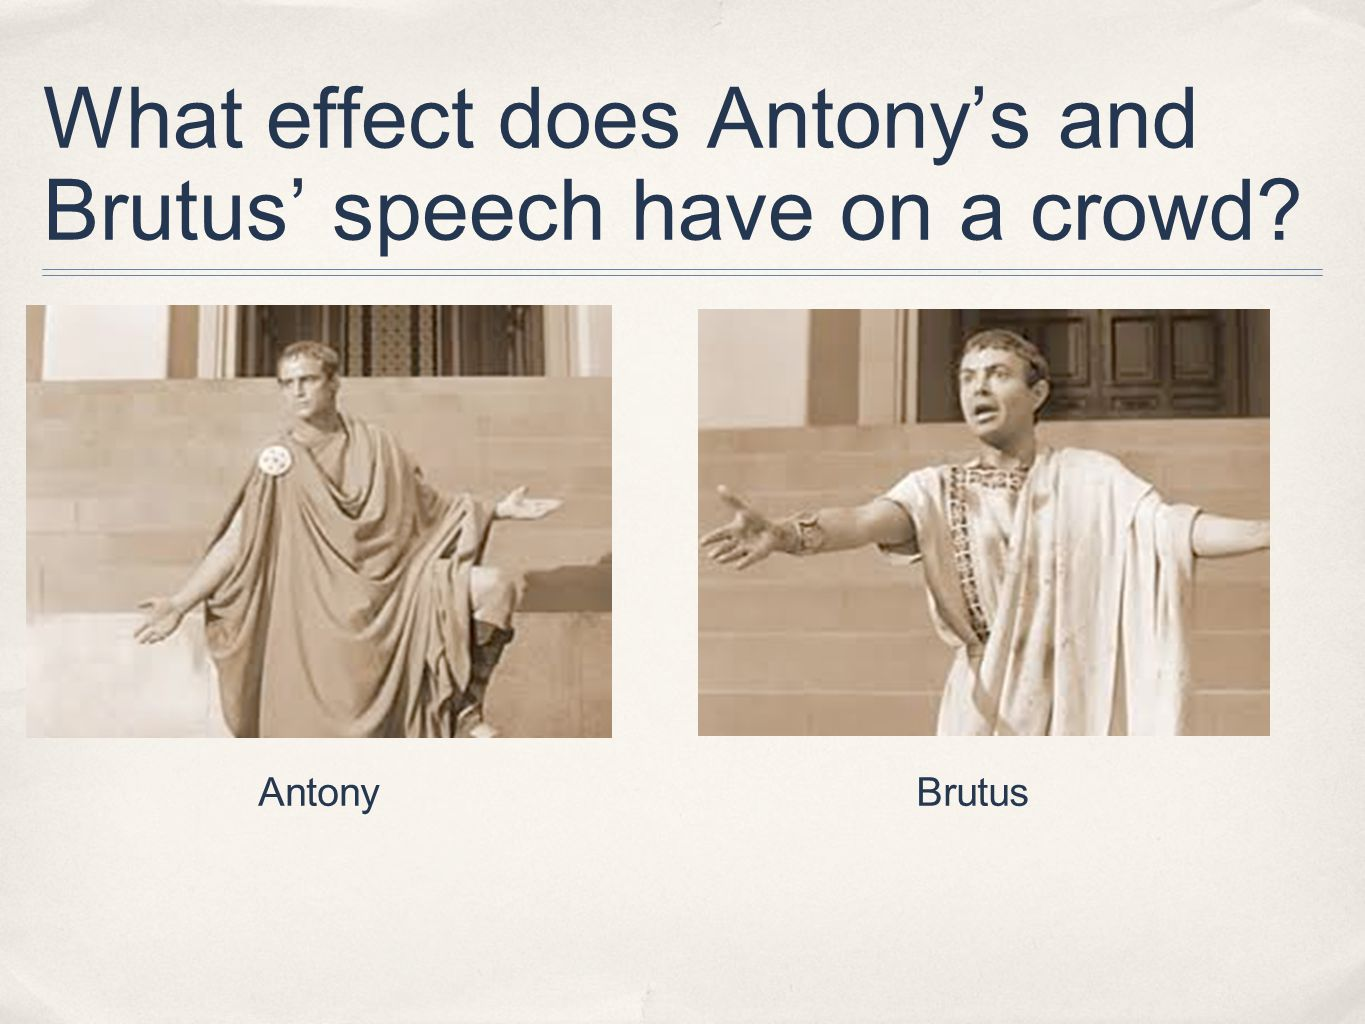 What effect does Antony's and Brutus' speech have on a crowd AntonyBrutus